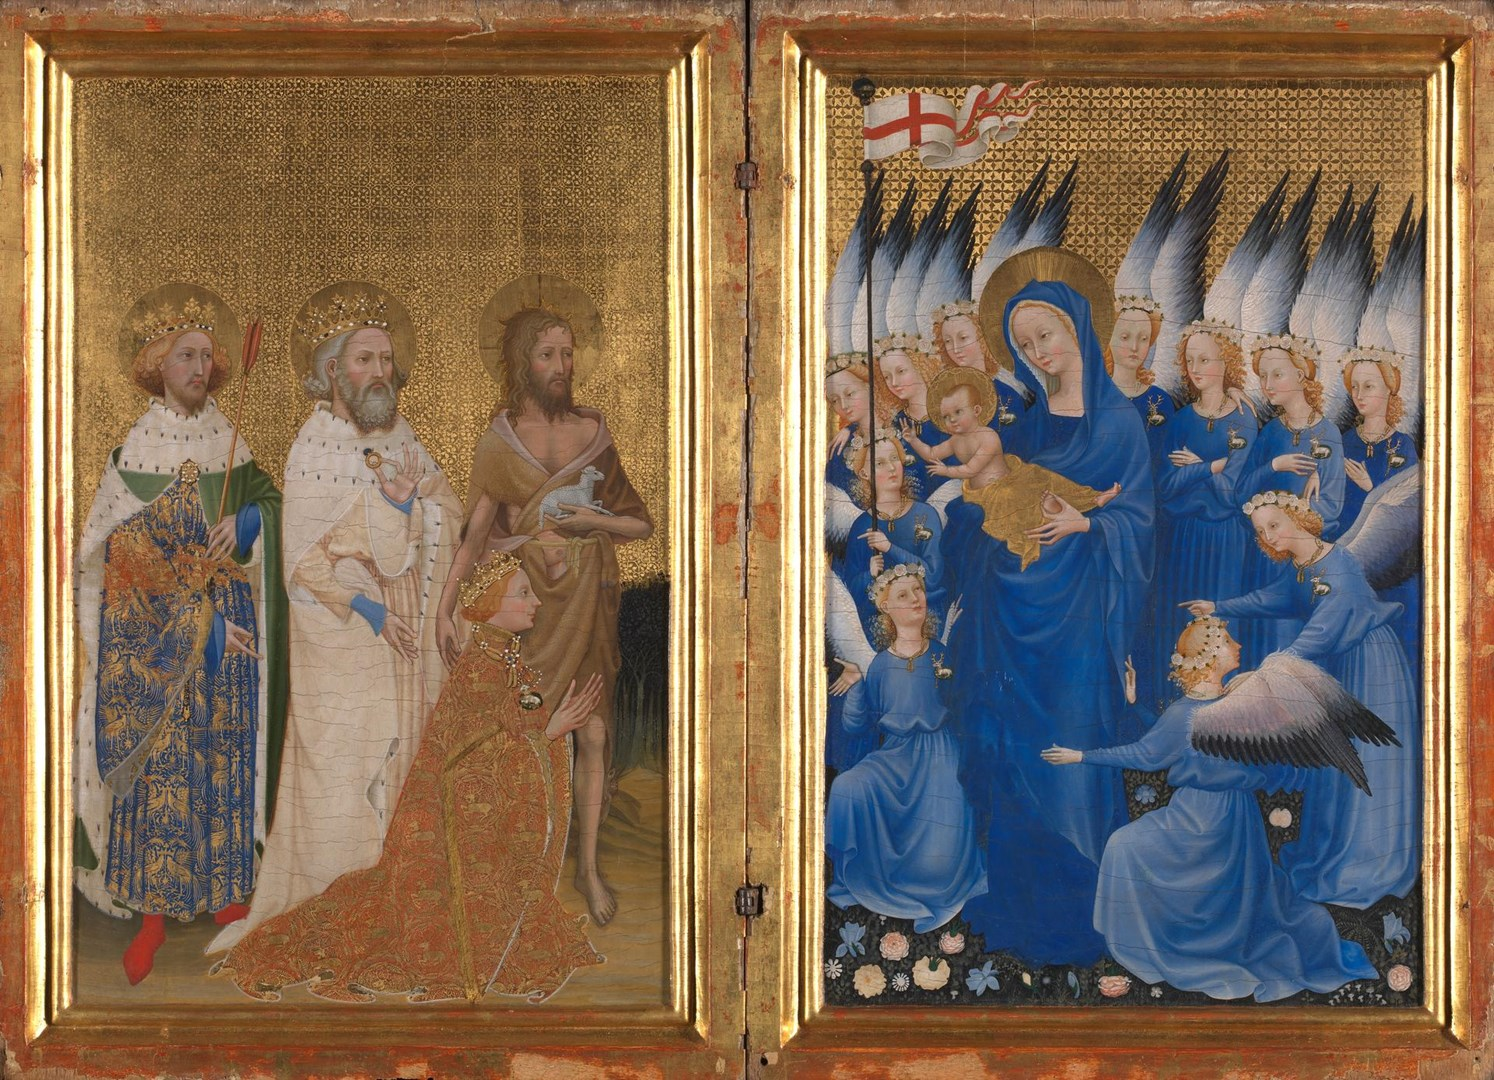 The Wilton Diptych by English or French (?)